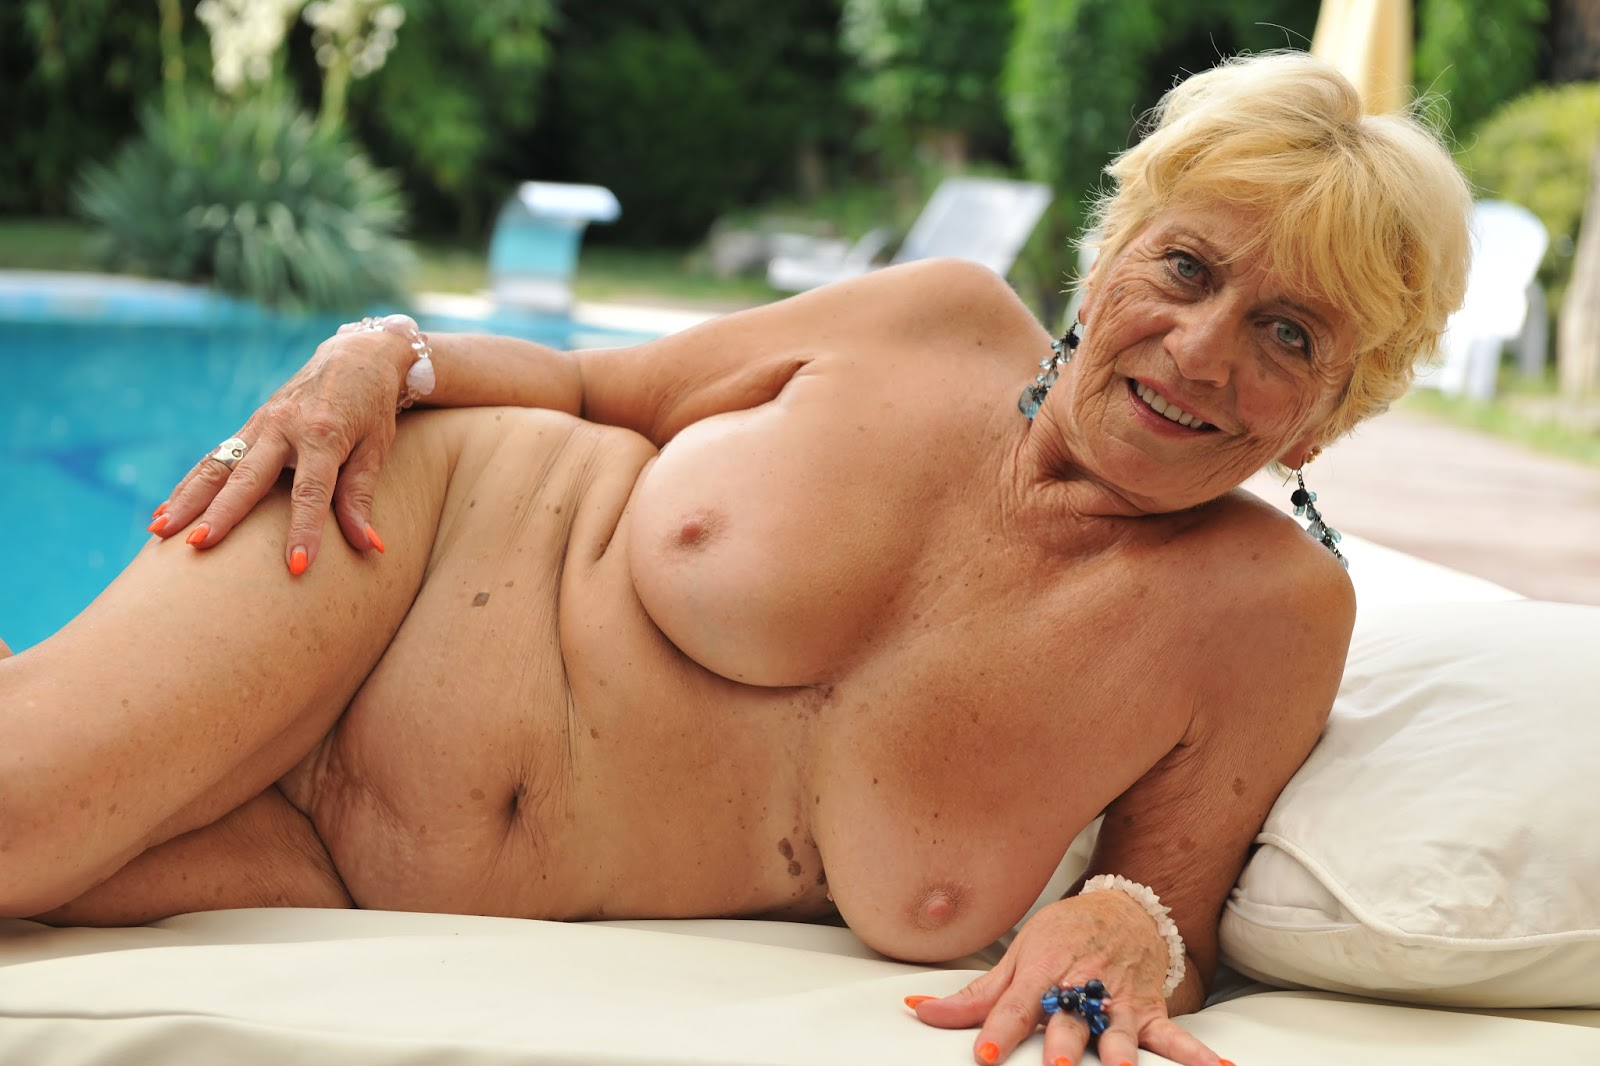 Naked Pictures Of Grannies